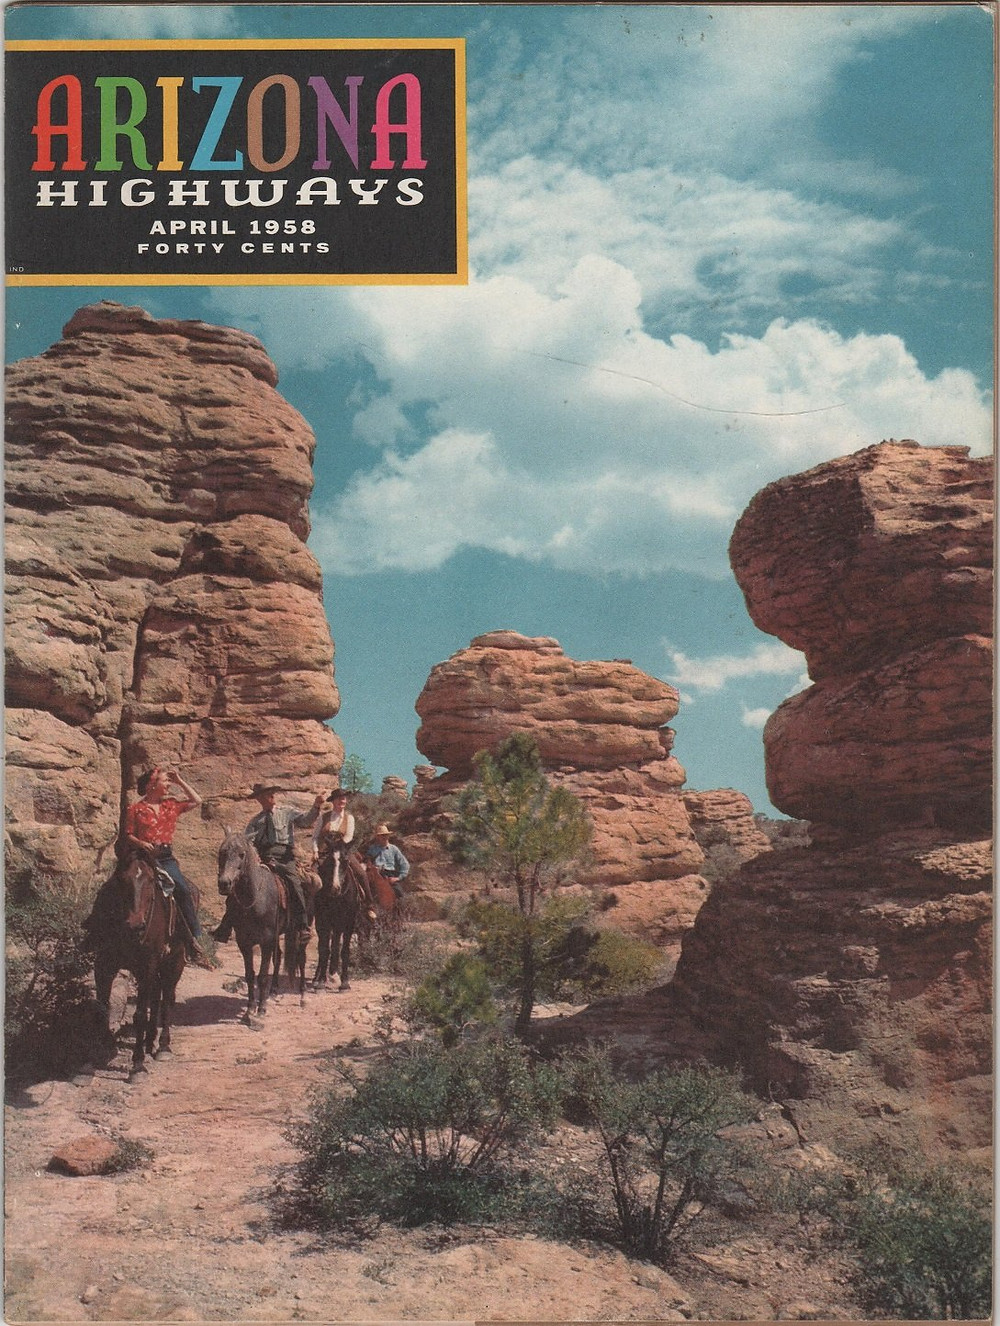 The cover of the April 1958 Arizona Highways Magazine with pictures of Cochise County